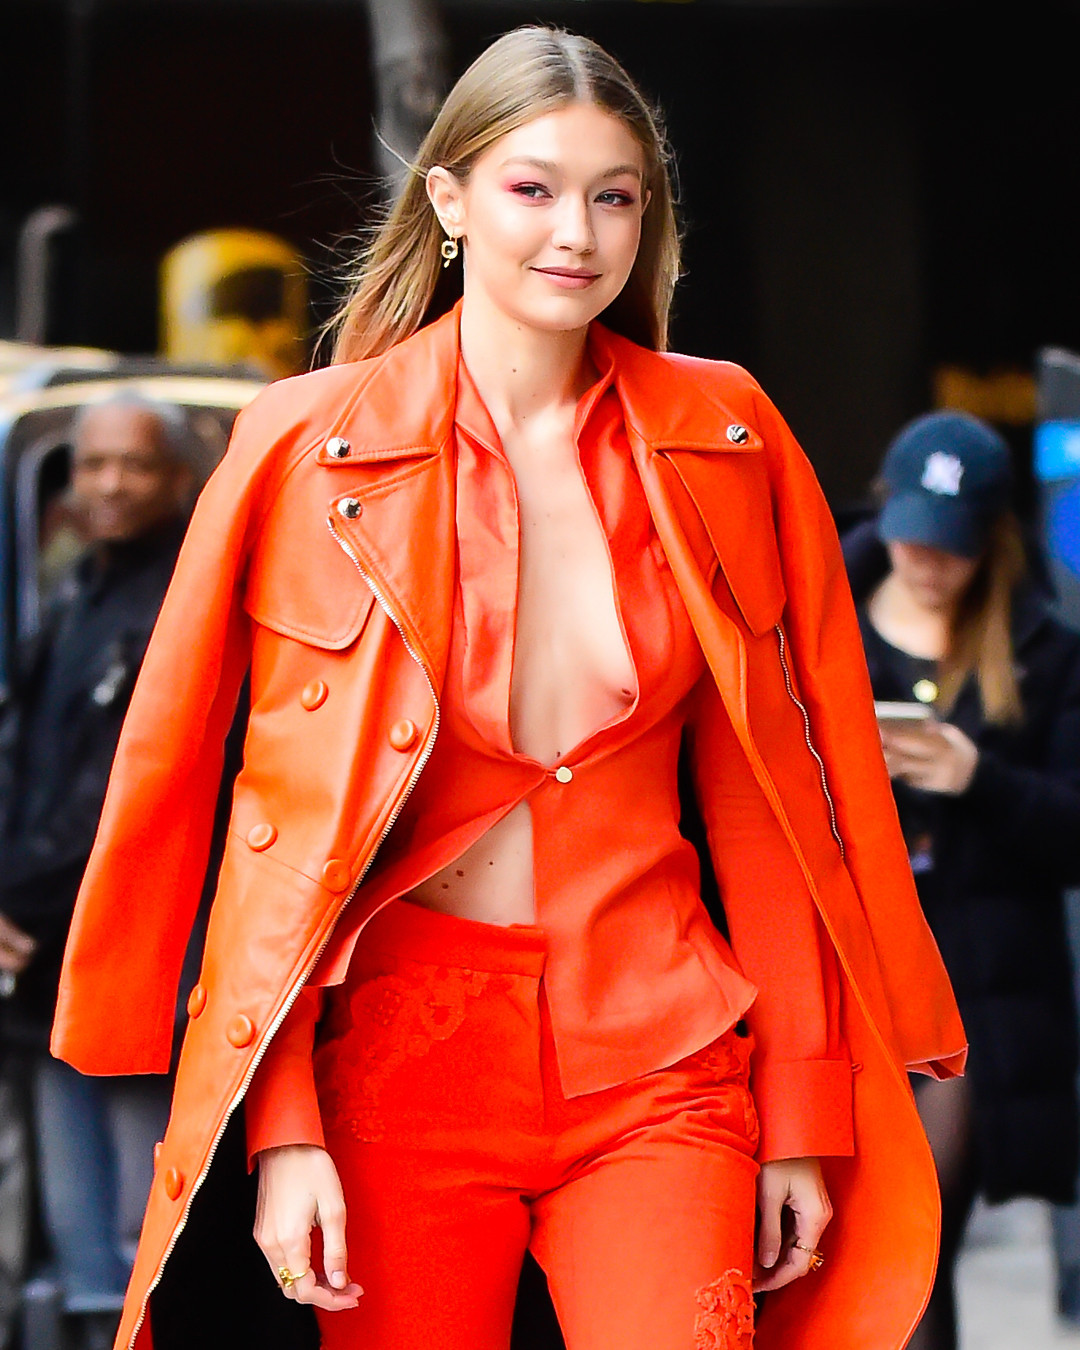 Celeb Fashion Trends That Are Already Making An Impact In